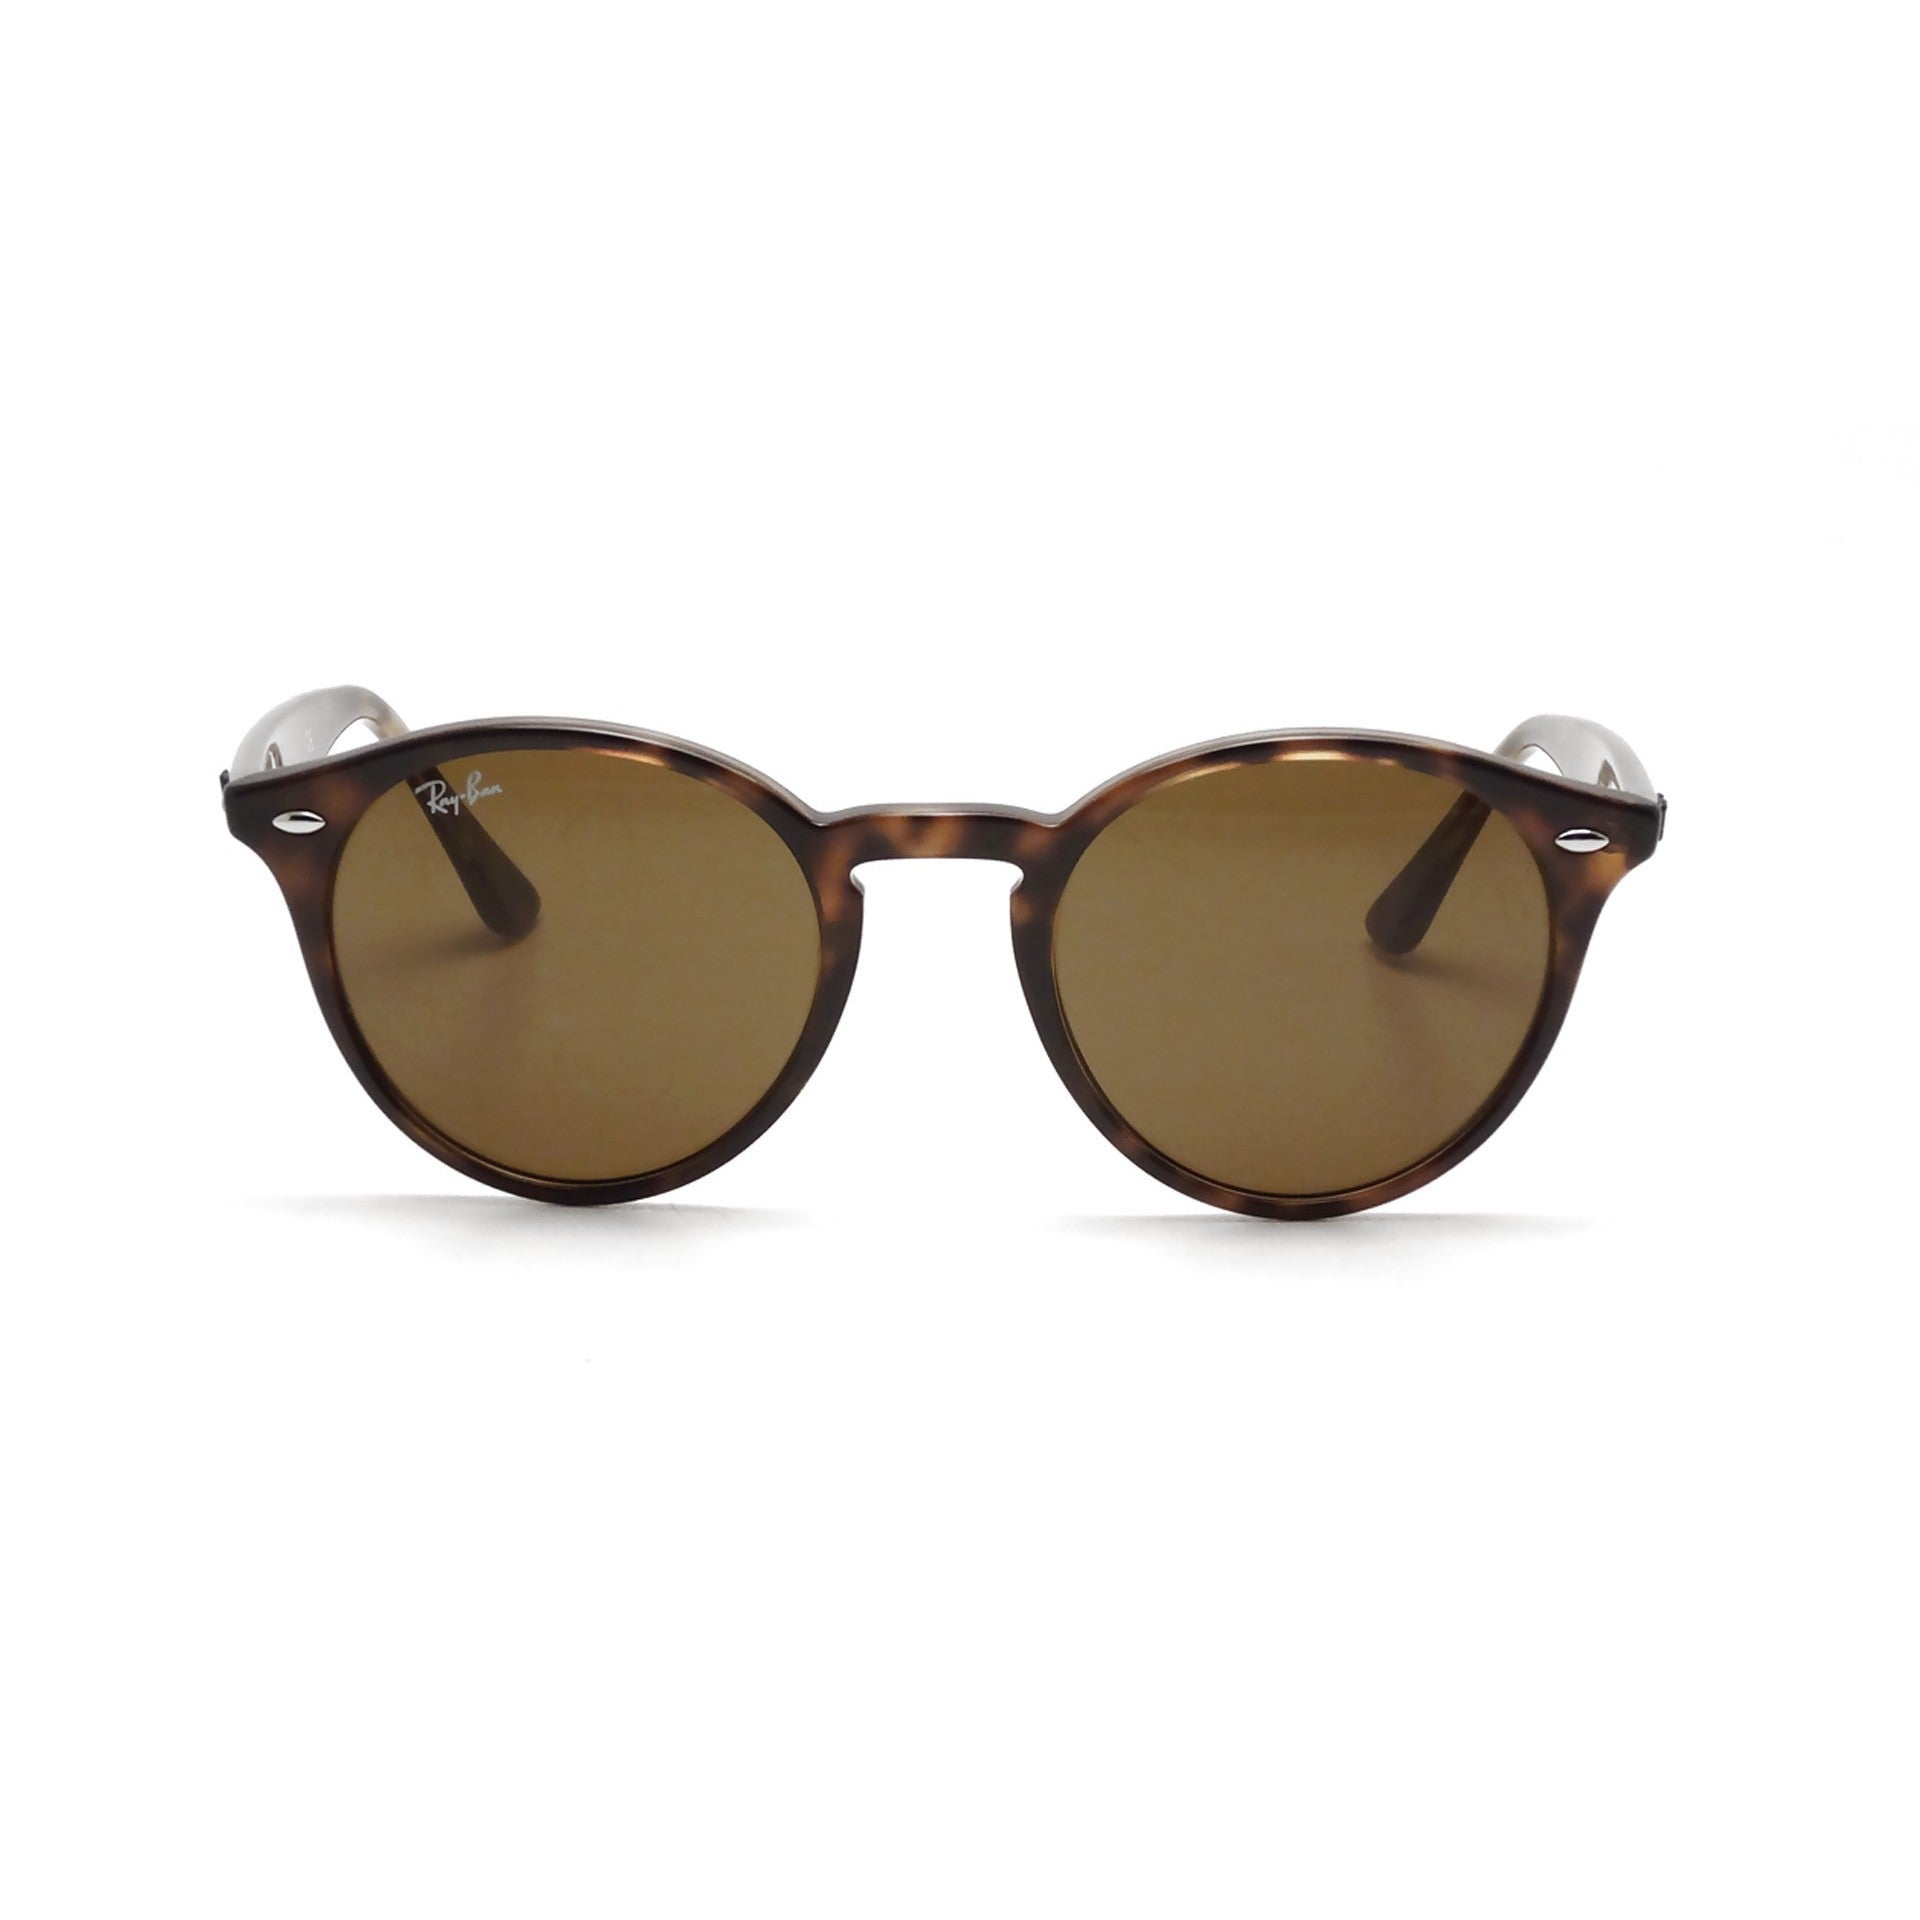 9cc24d7dfda0 Shop Ray-Ban RB2180 710/73 Tortoise Frame Brown Classic 49mm Lens  Sunglasses - Free Shipping Today - Overstock - 11951996